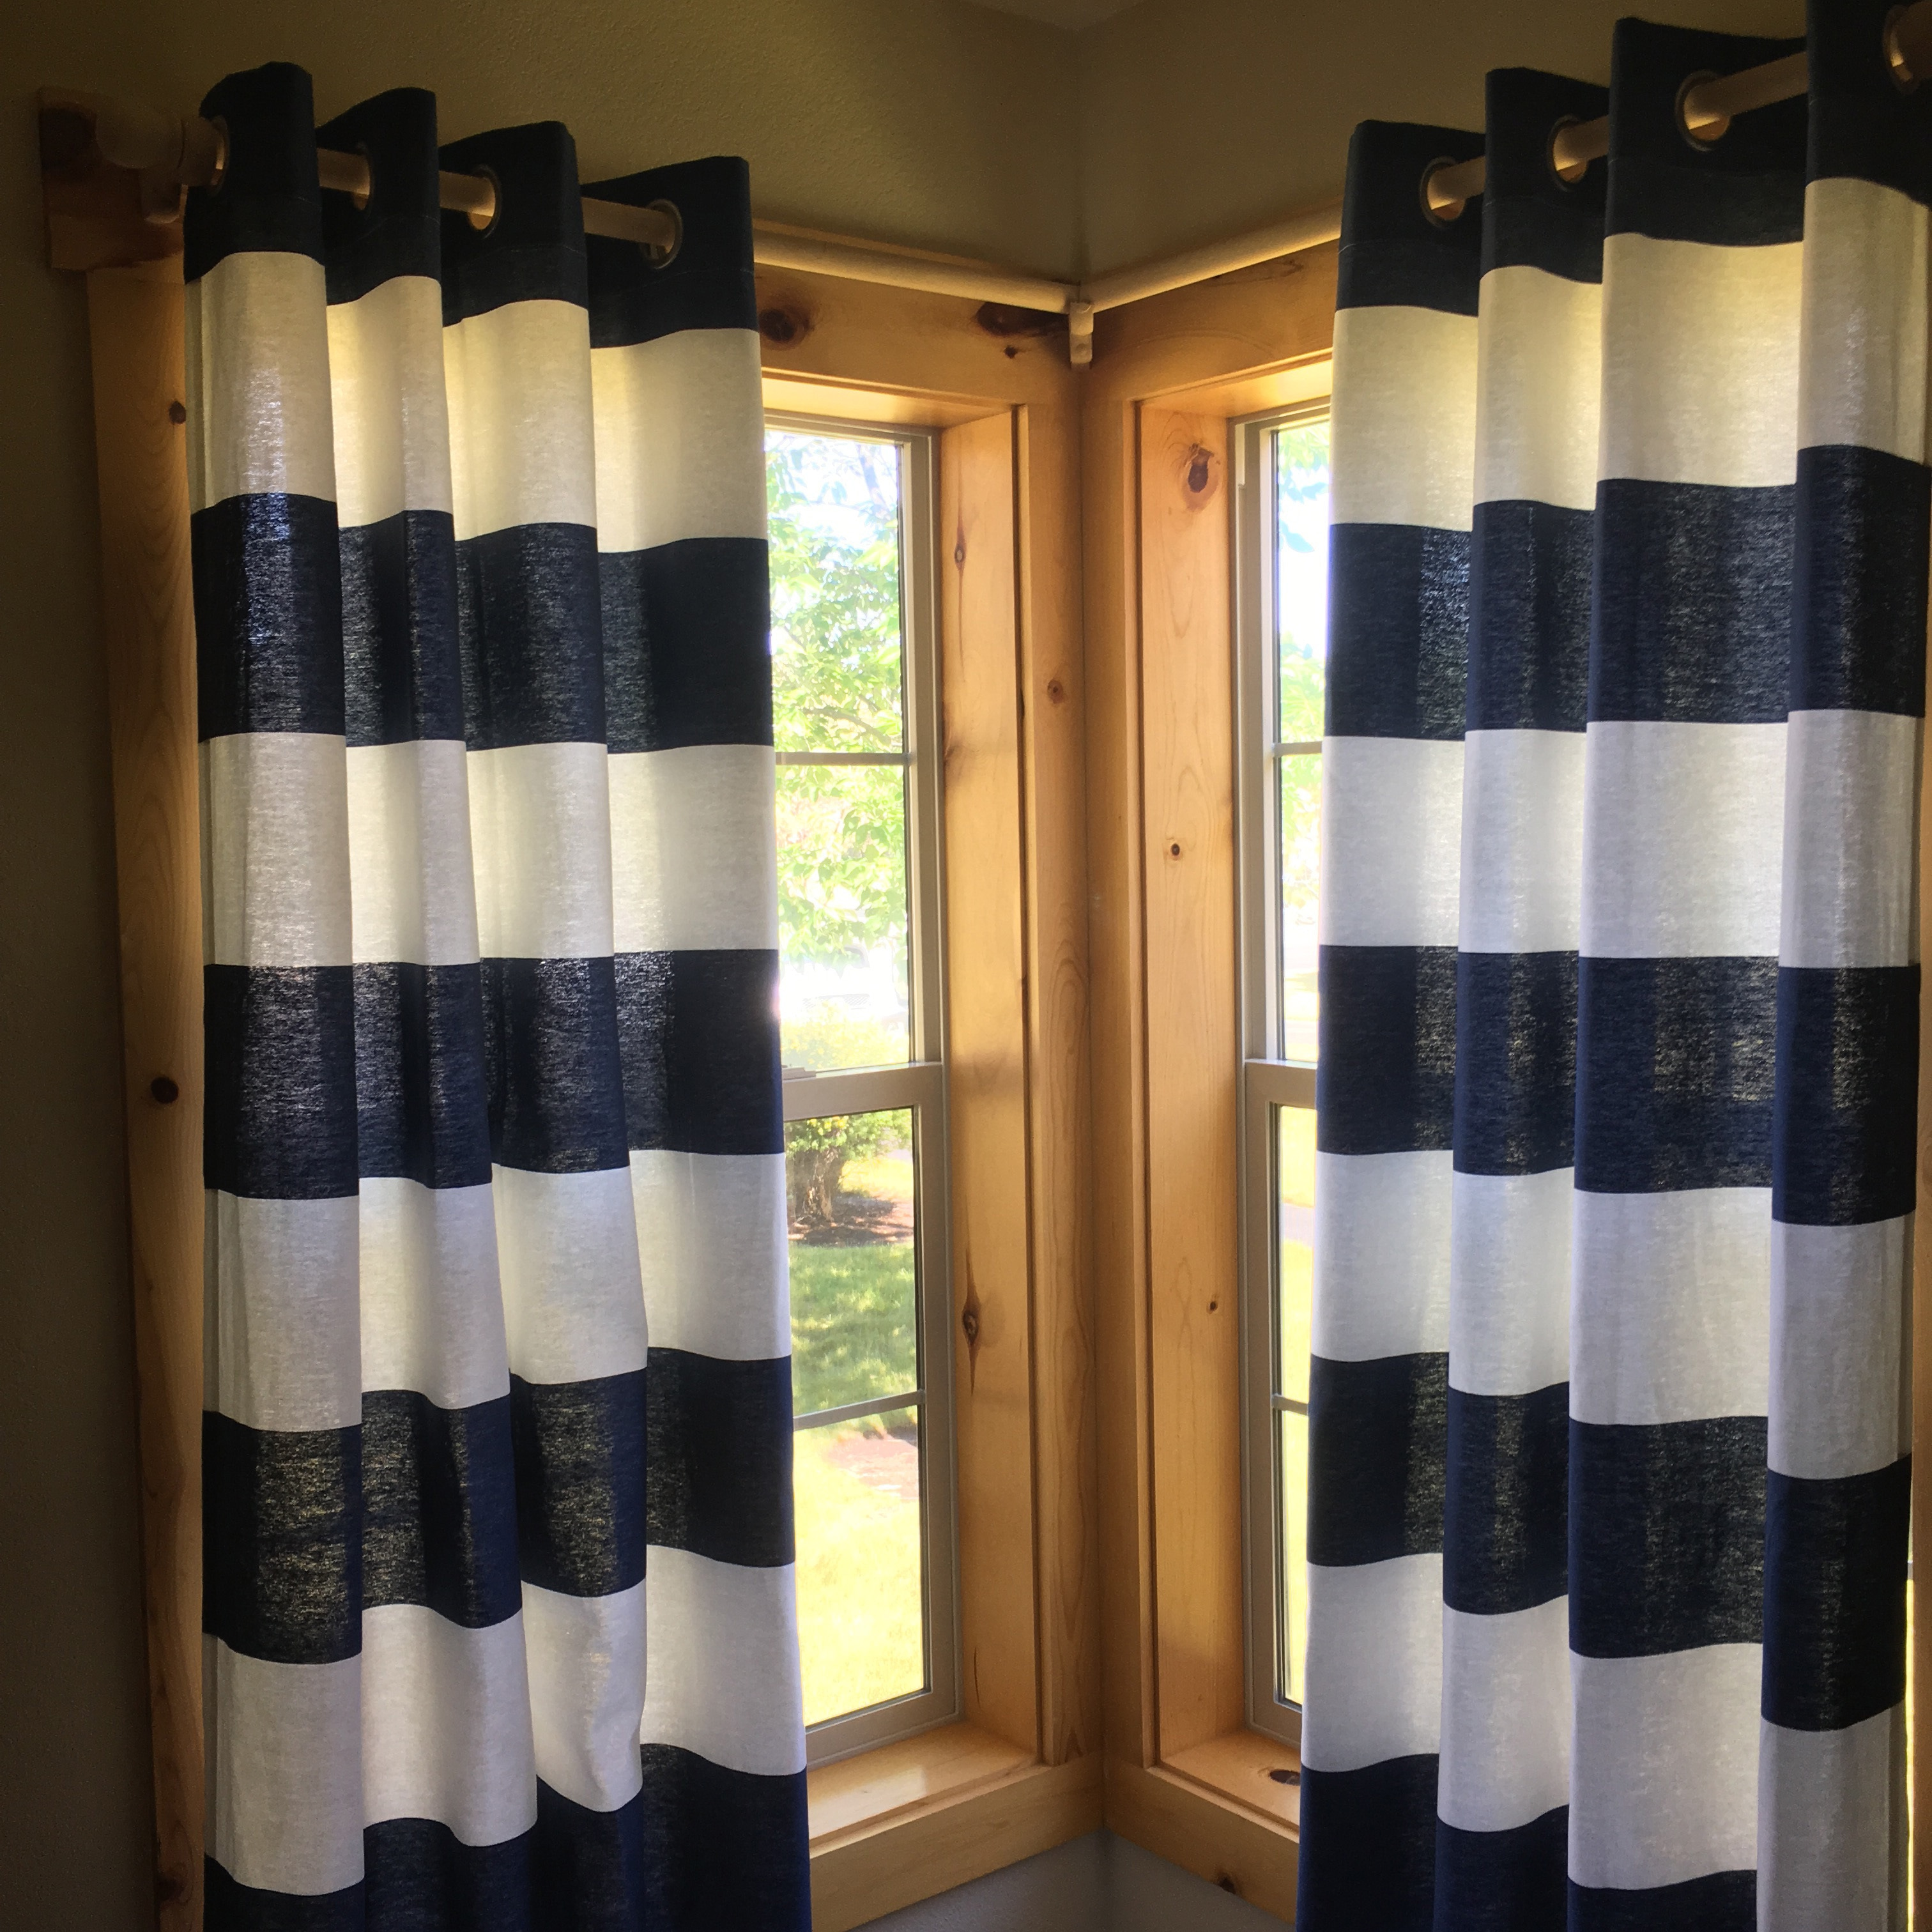 tfile inspiration swag and green the smartswagcurtainsbedroomideascurtainsswagcurtainsfor picture concept curtain jcpenney kelly best unbelievable shower nautica of curtains